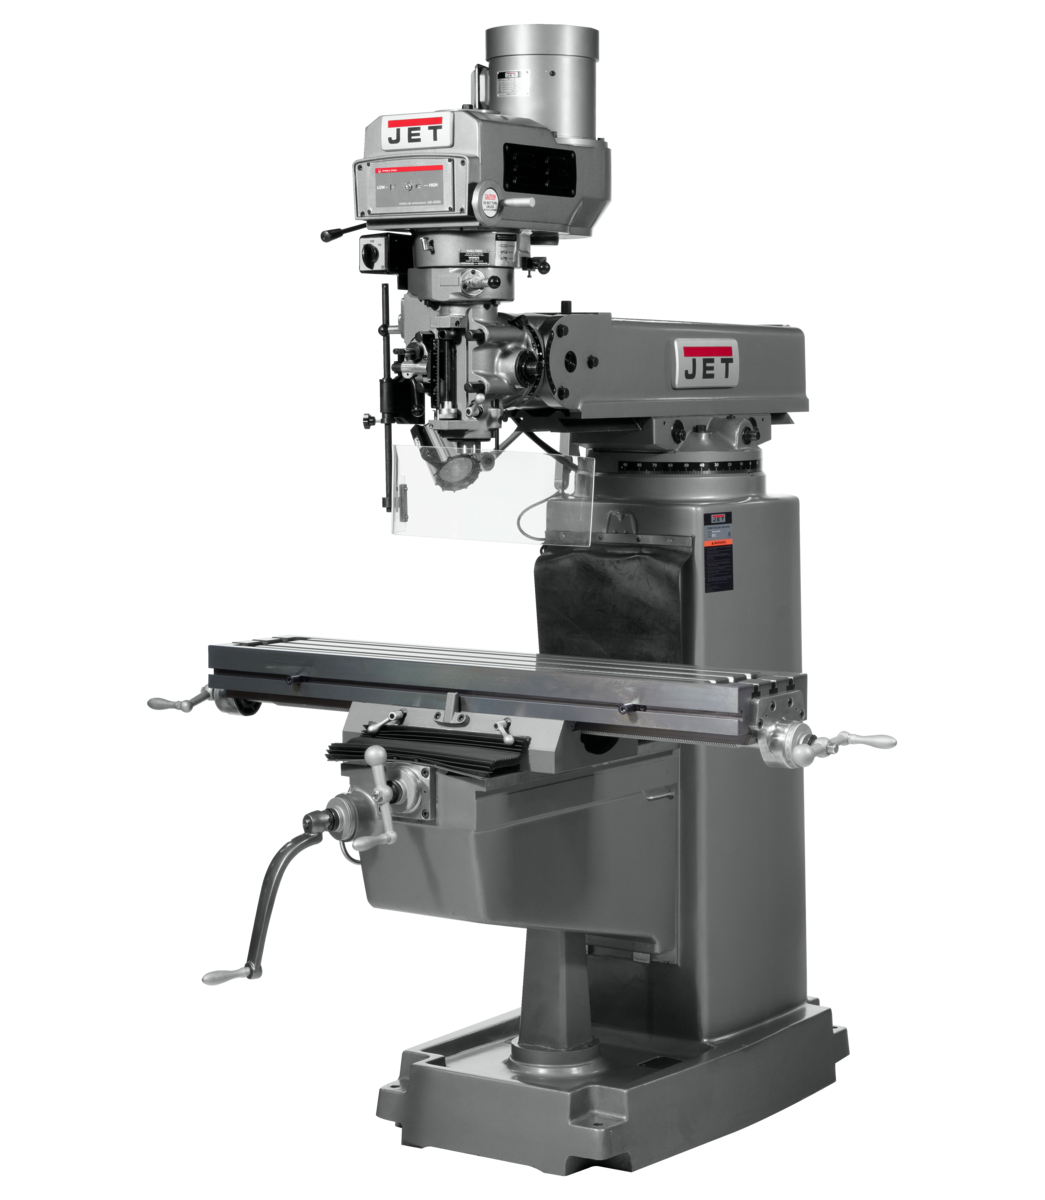 JTM-1050VS2 Mill With 3-Axis ACU-RITE 203 DRO (Knee) With X and Y-Axis Powerfeeds